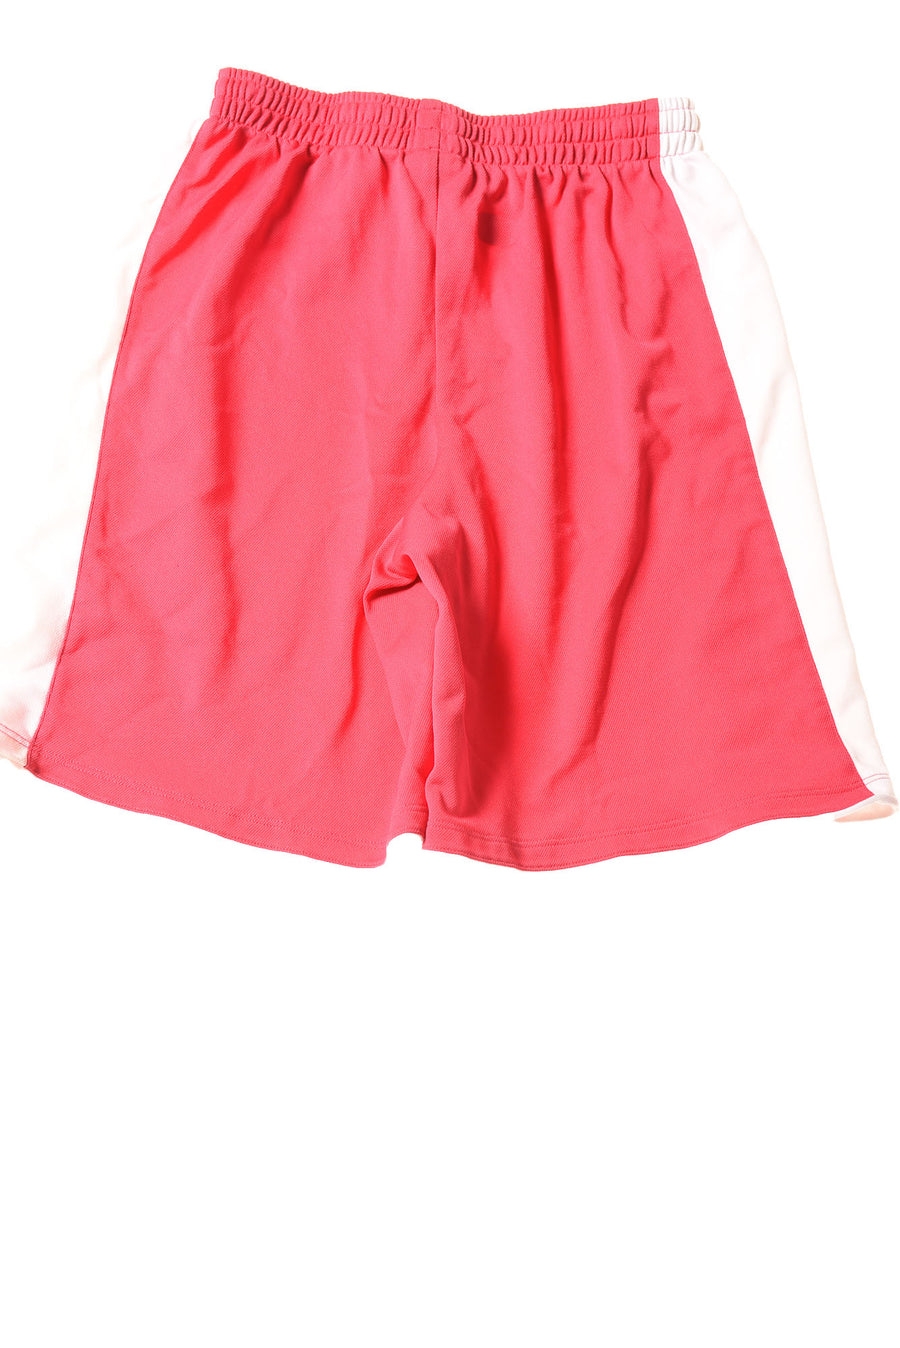 USED Under Armour Girl's Shorts Medium Pink & White